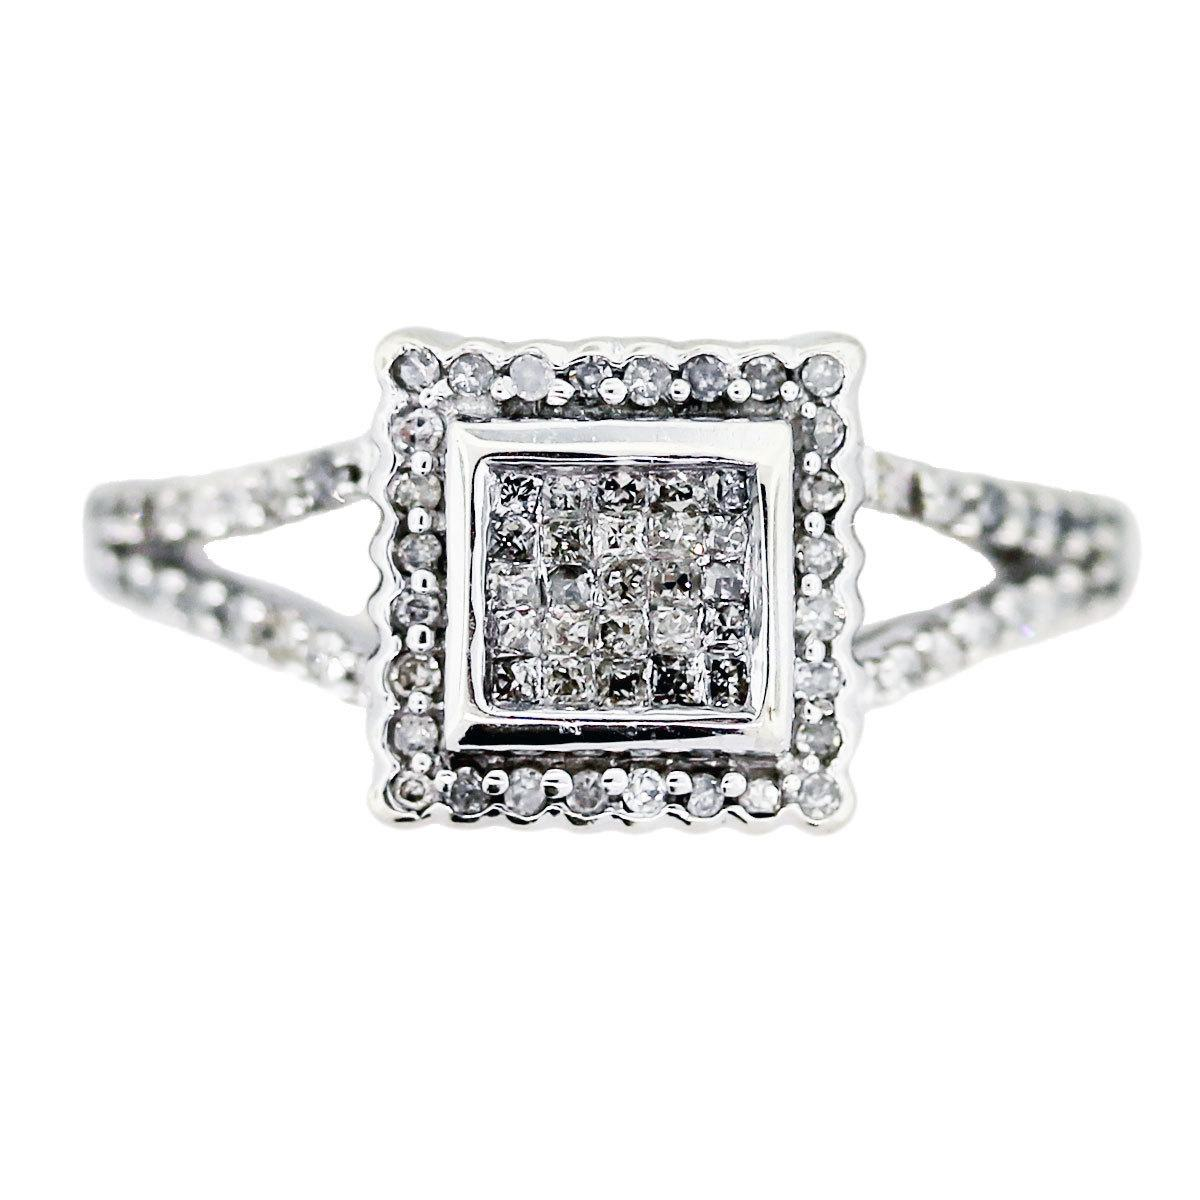 Engagement Ring Eye Candy Engagement Rings Under 1000 Dollars Paperblog